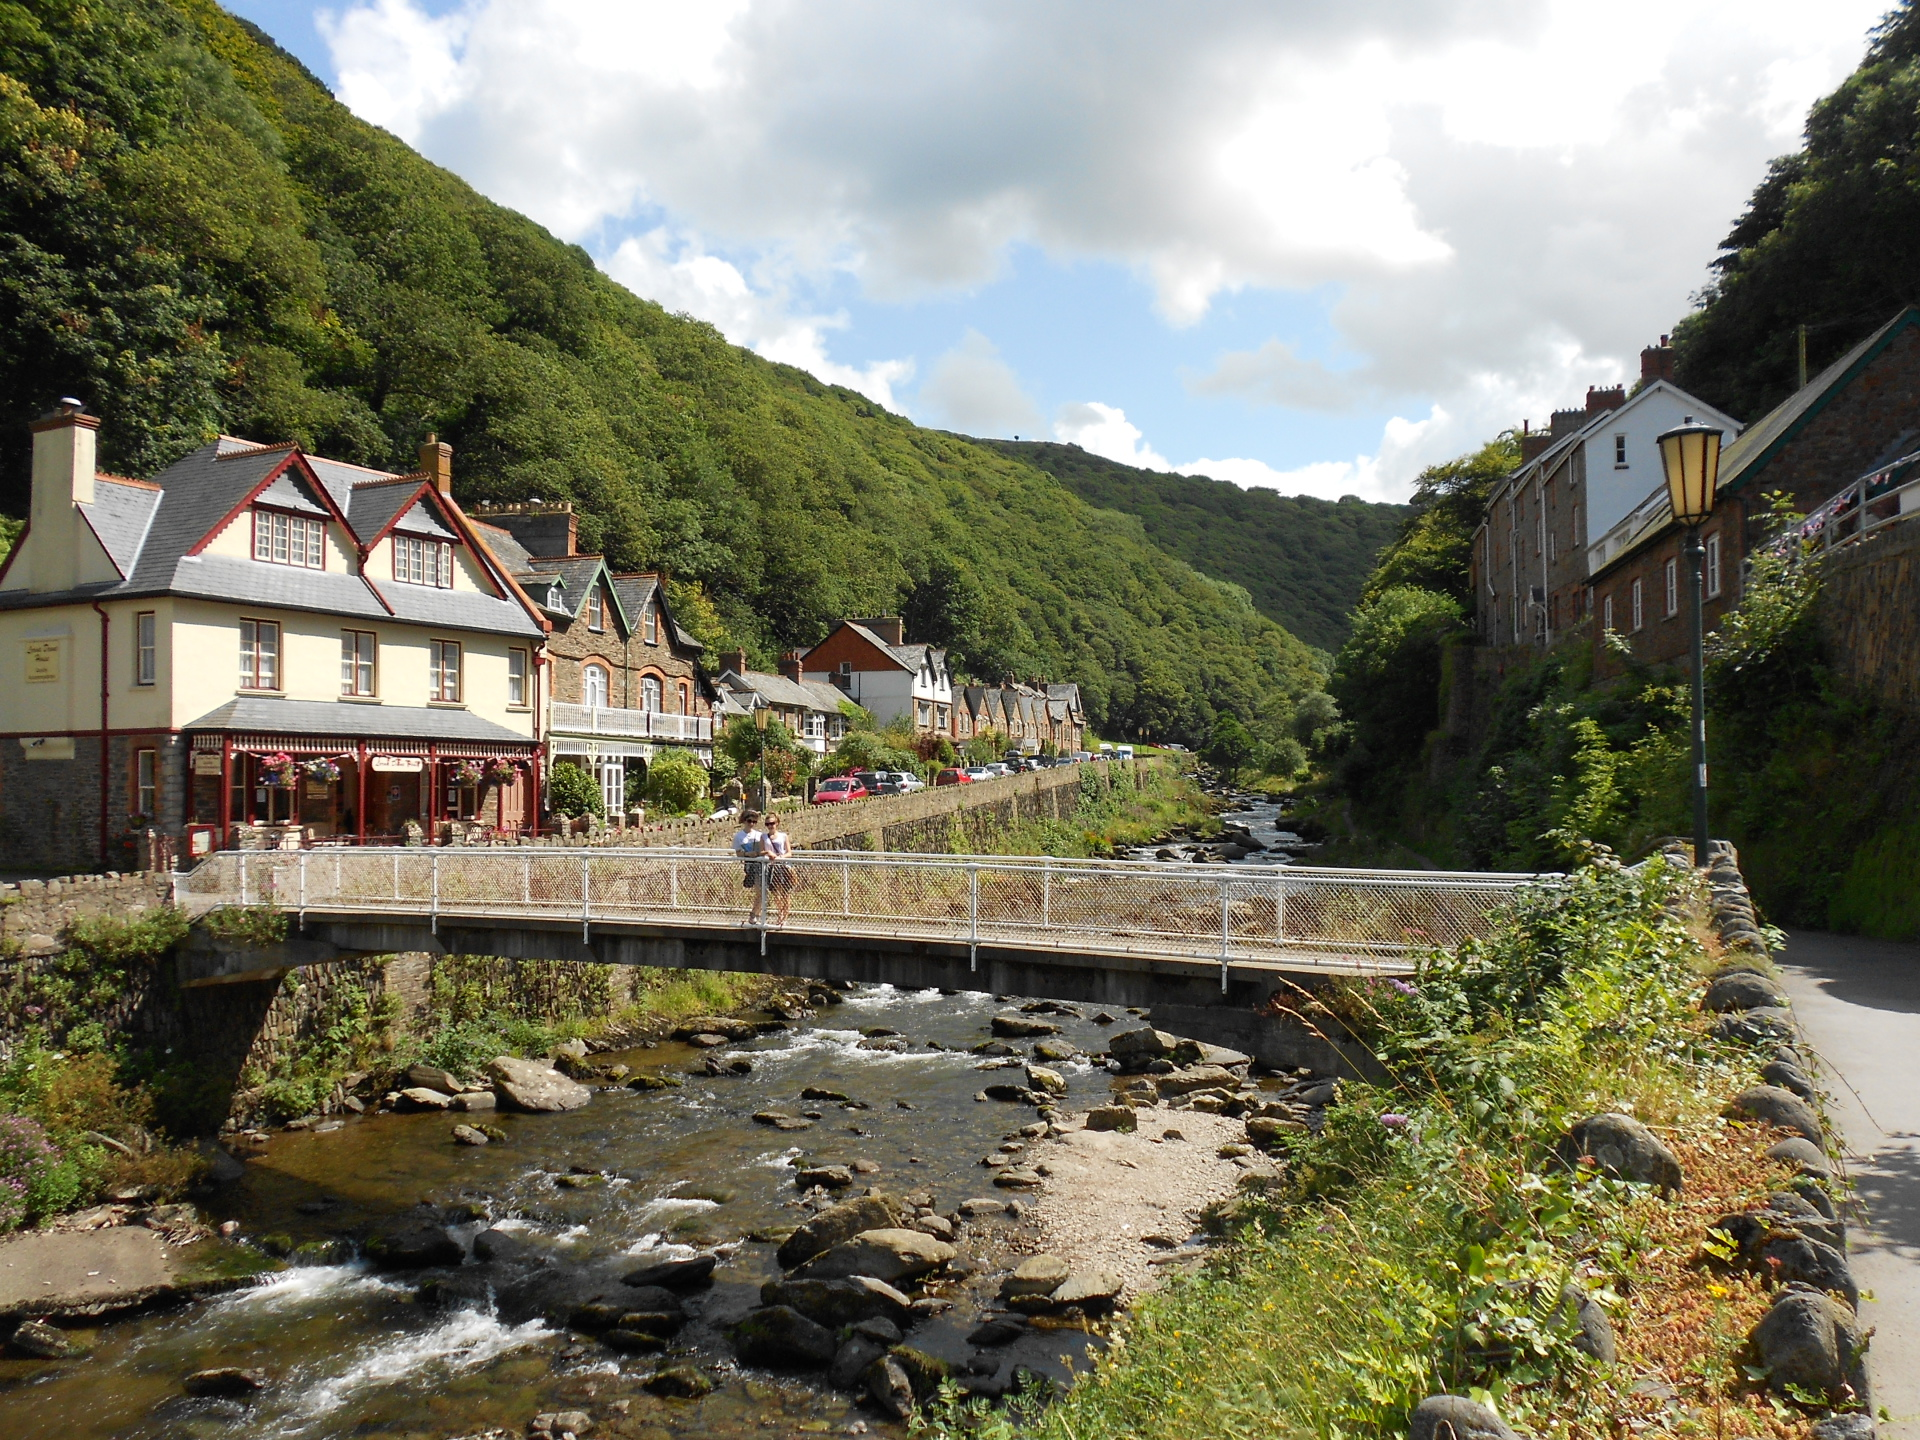 somerset, dunster, beach, hut, salad, days,Glen, Lyn, Gorge, Lynton, and, Lynmouth, Devon